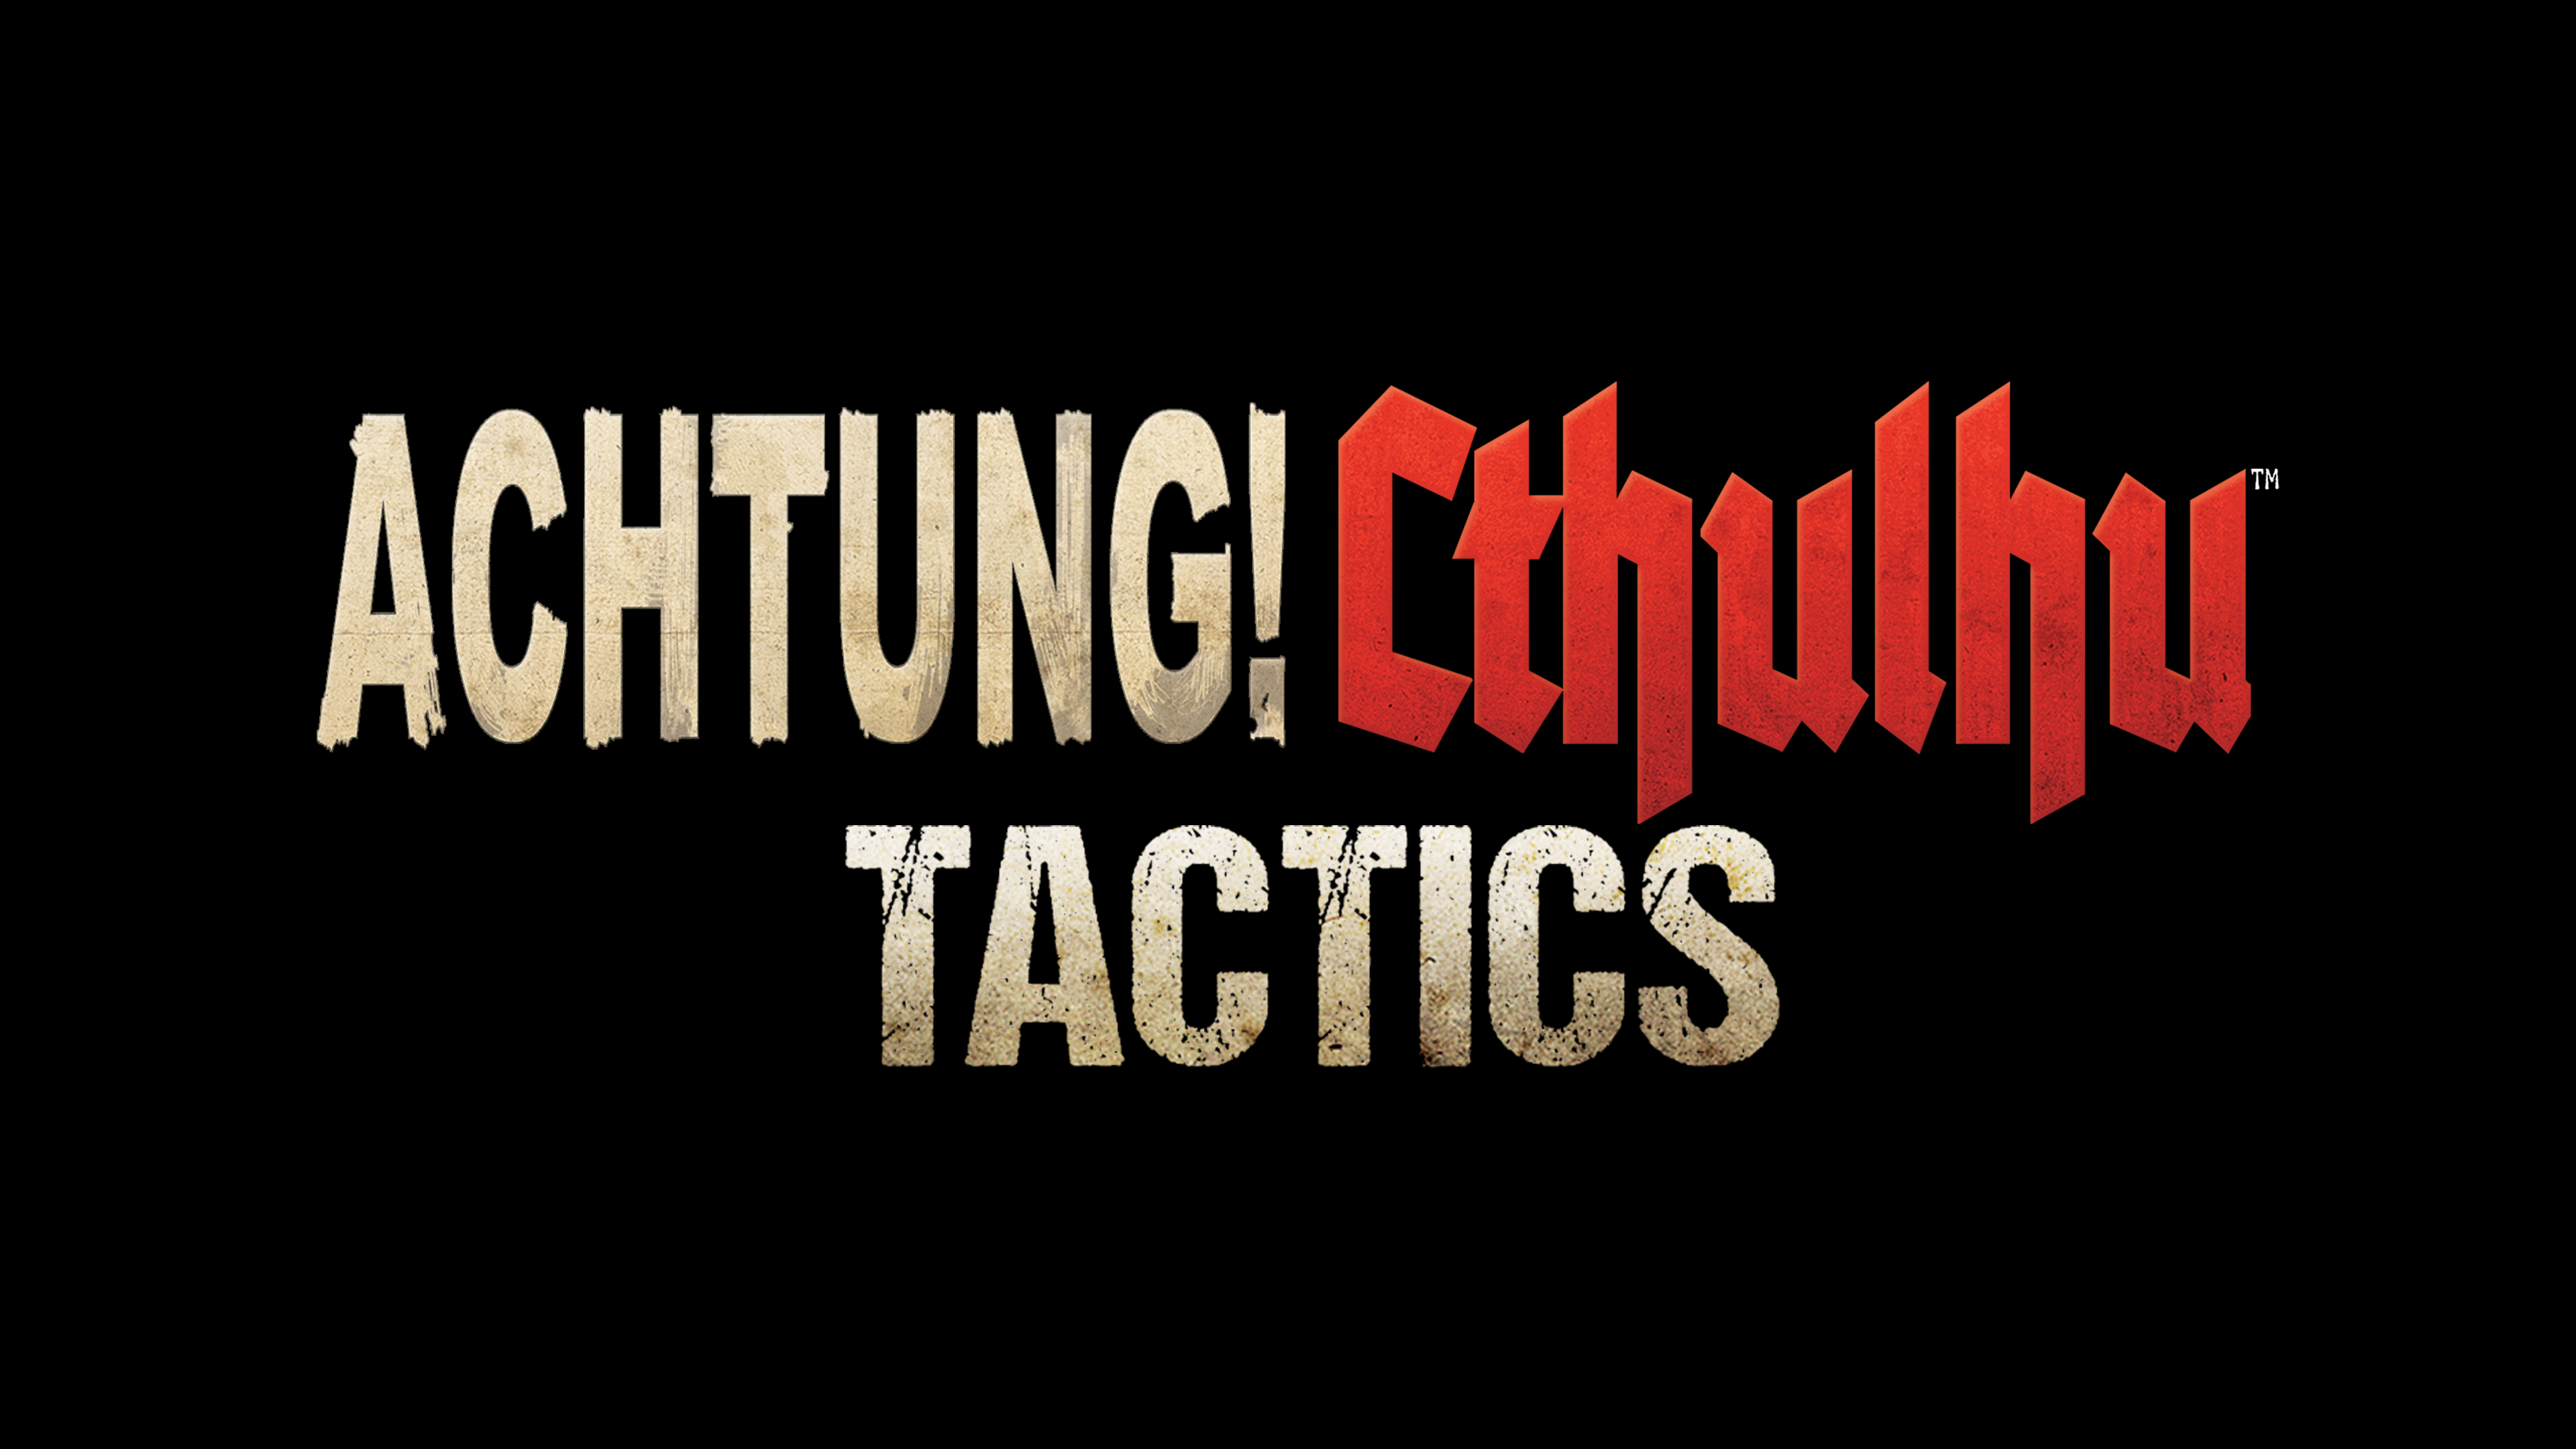 Achtung! Cthulhu Tactics - Action/RPG Video Game Logo